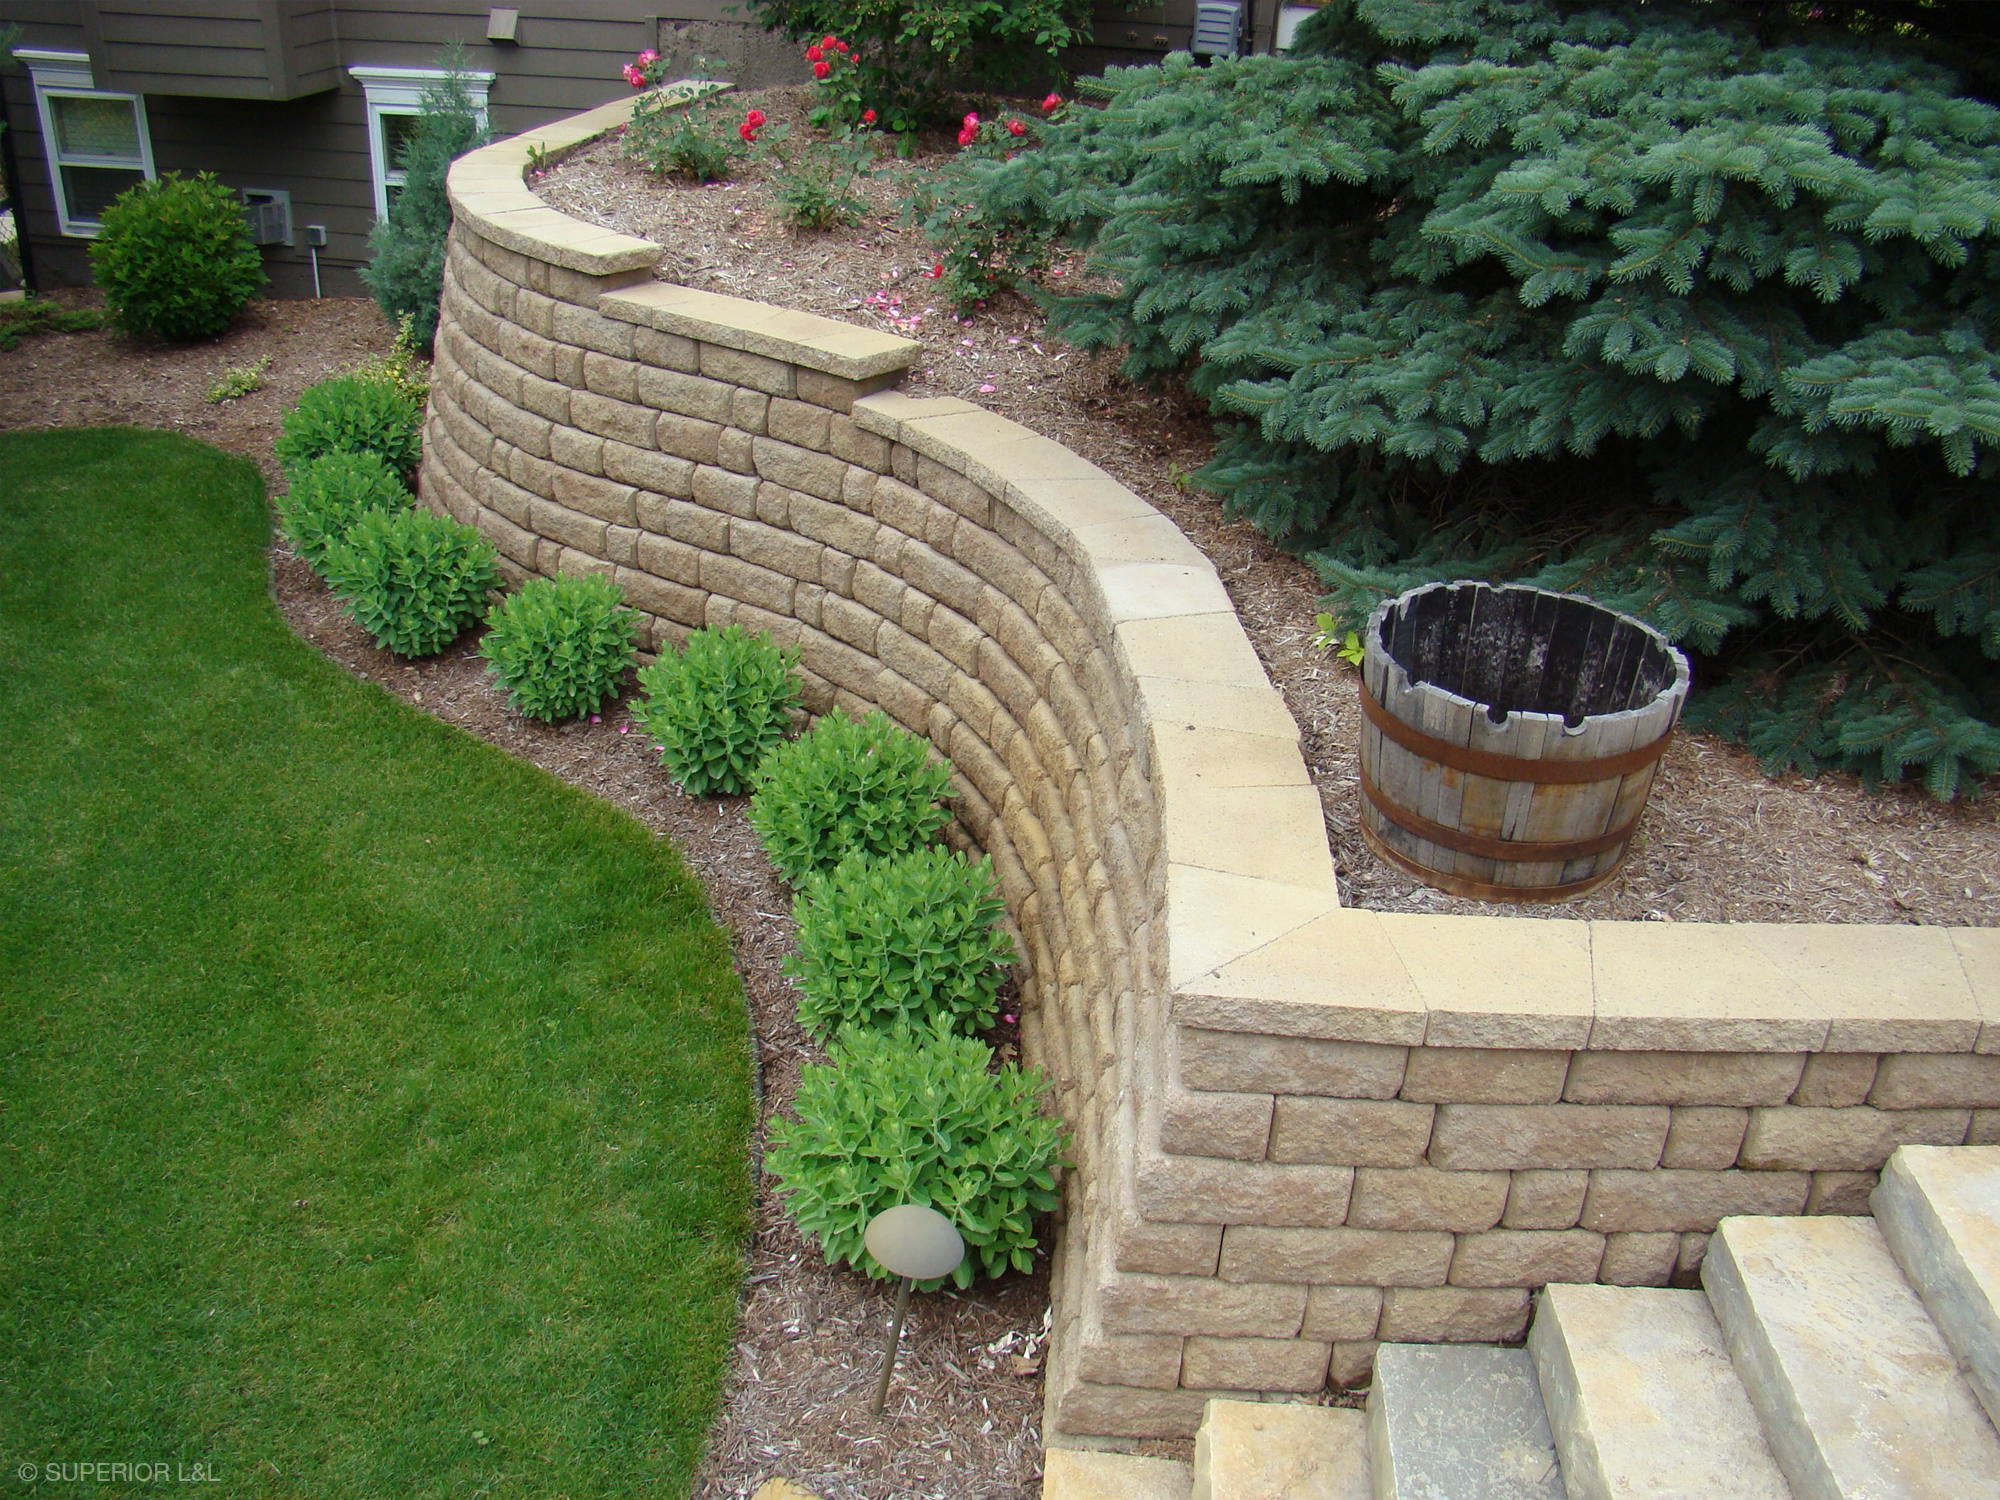 superior-ll-retaining-walls-009.jpg